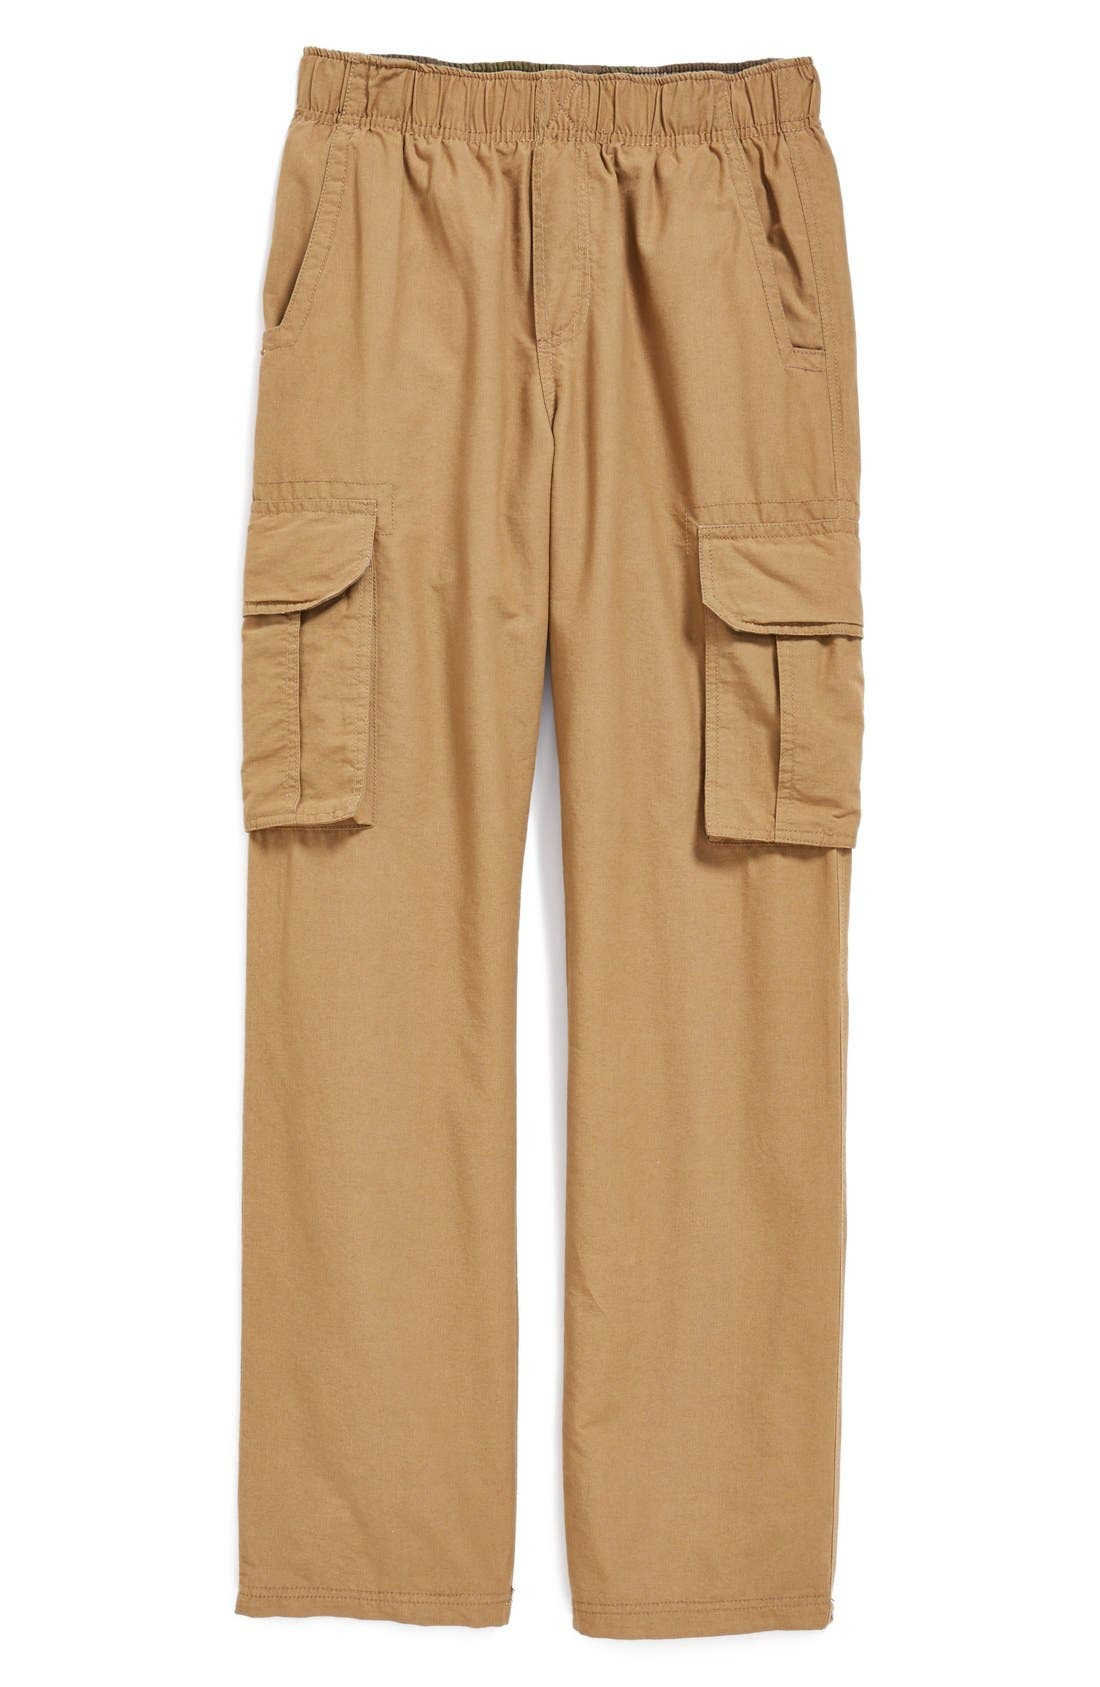 Main Image - Tucker + Tate 'Zephyr' Cargo Pants (Toddler Boys & Little Boys)